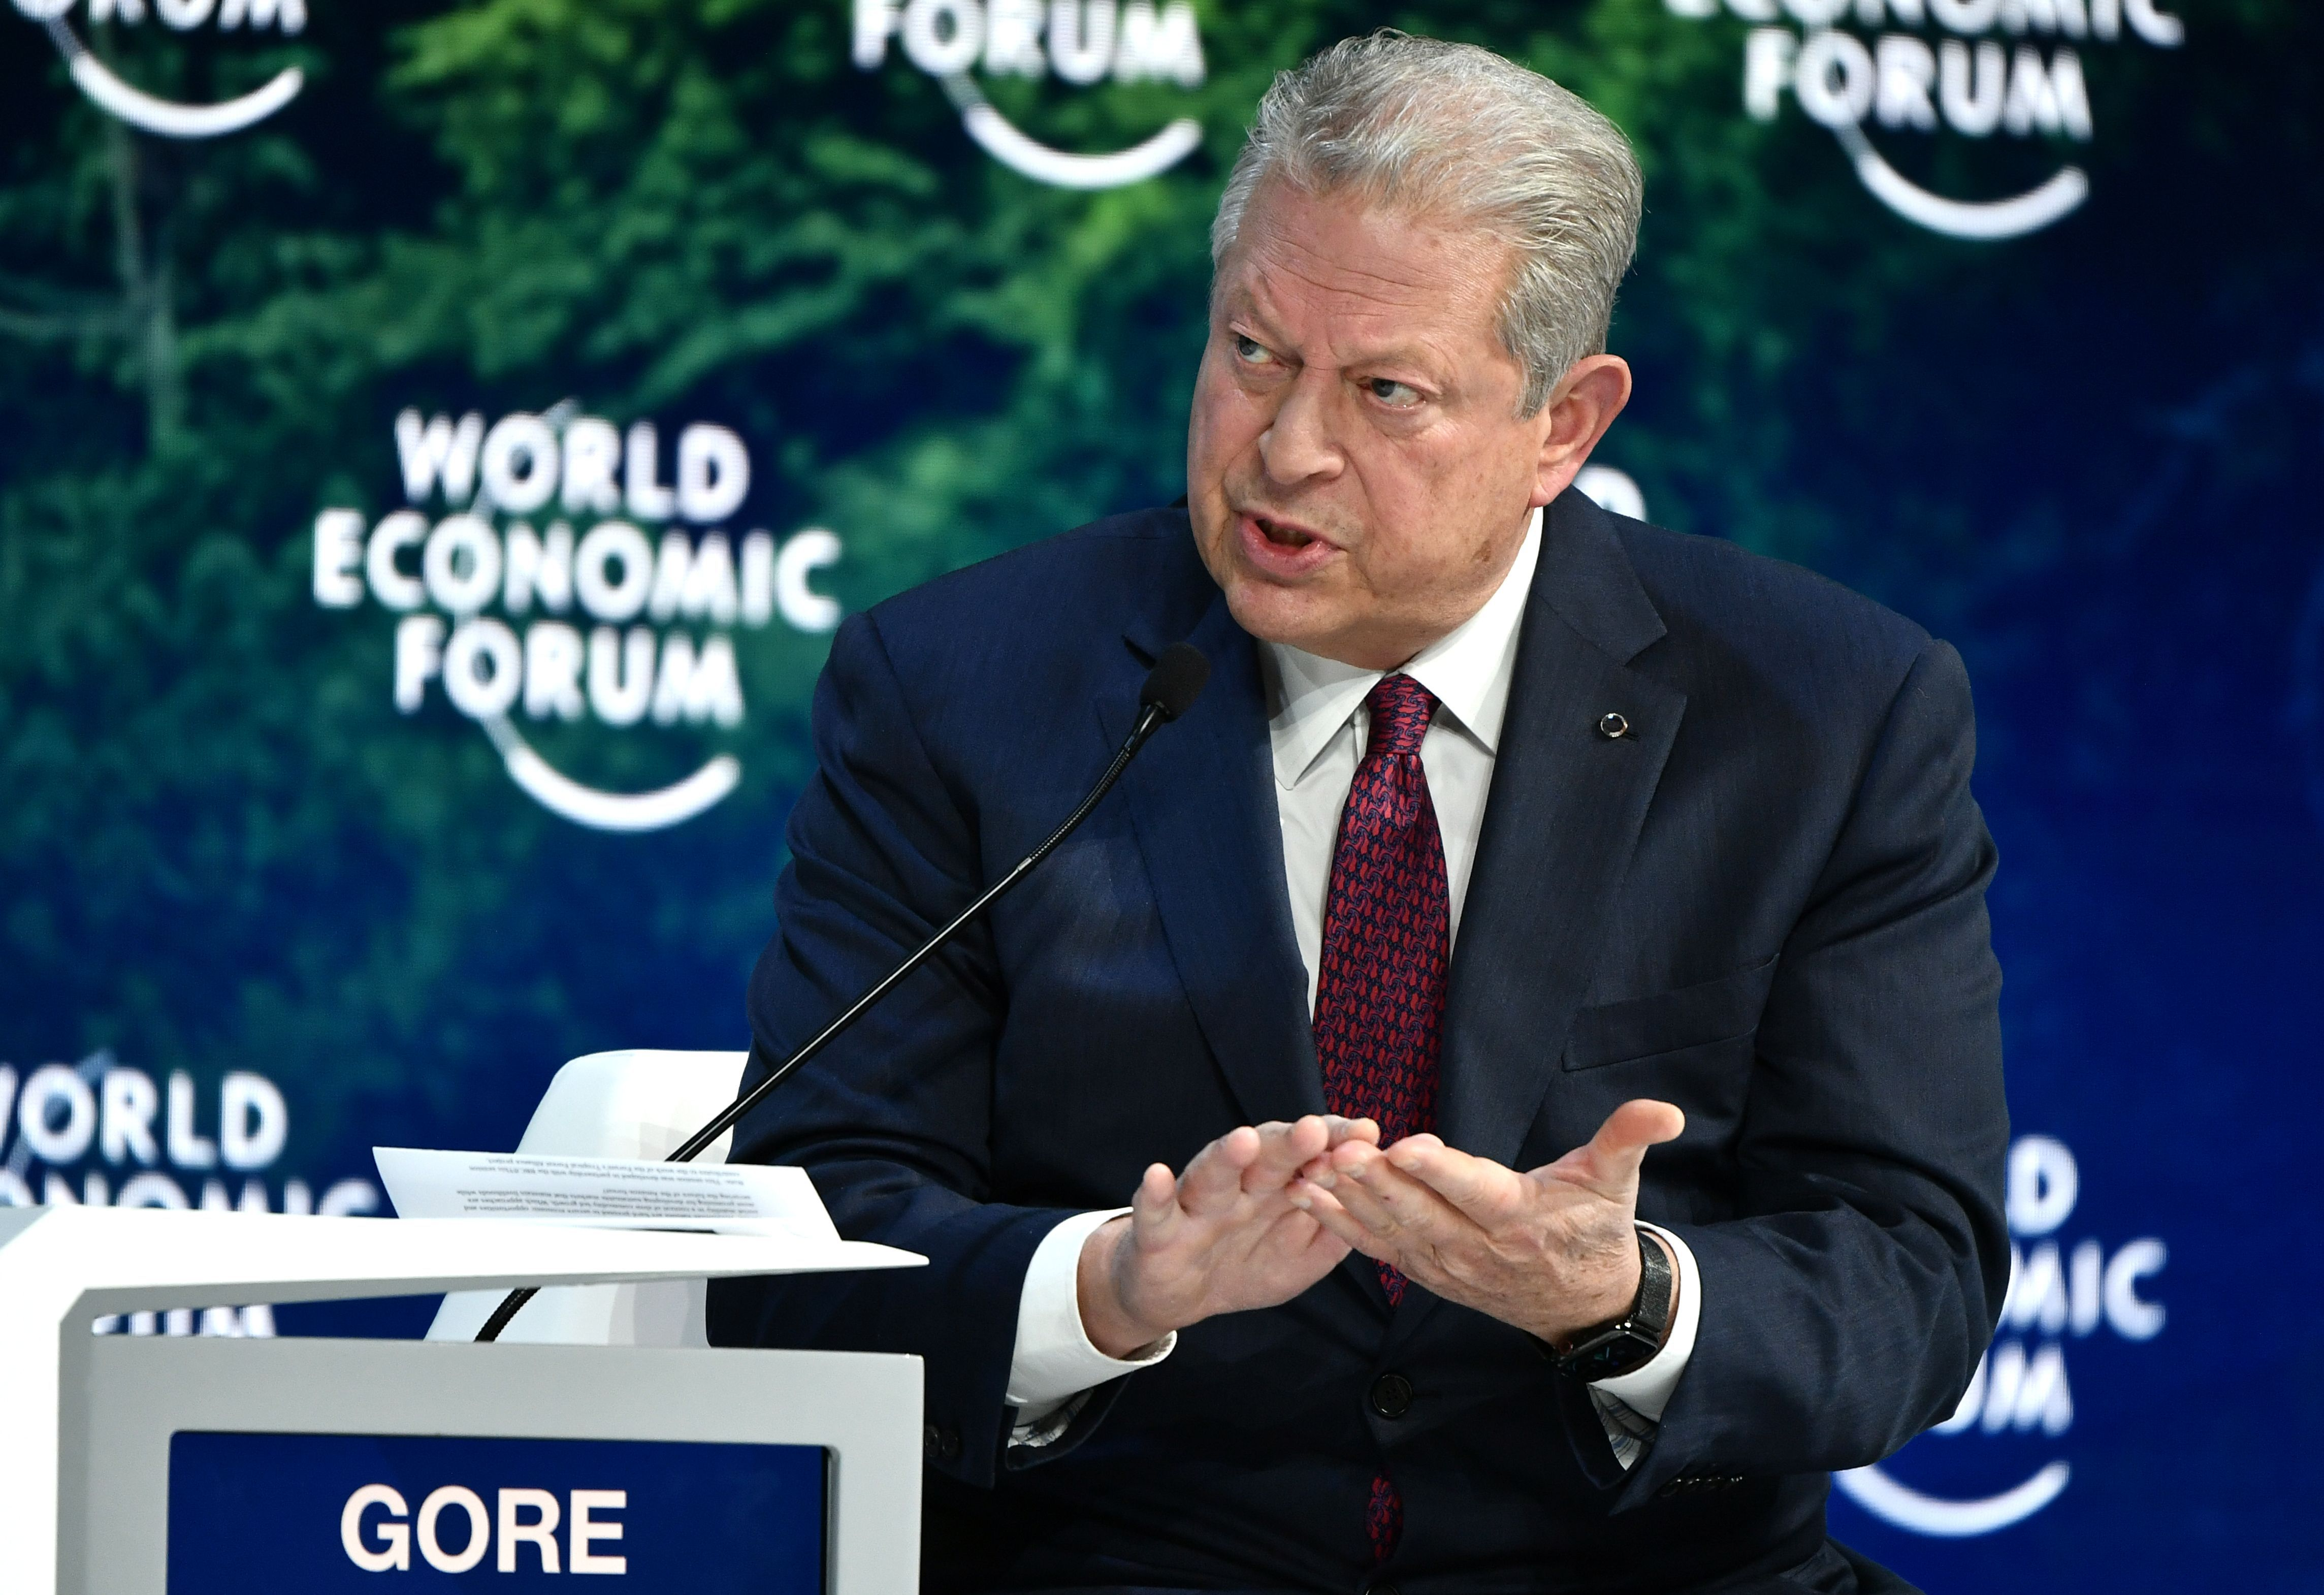 Al Gore launches voter drive to make climate fight an election priority - Axios